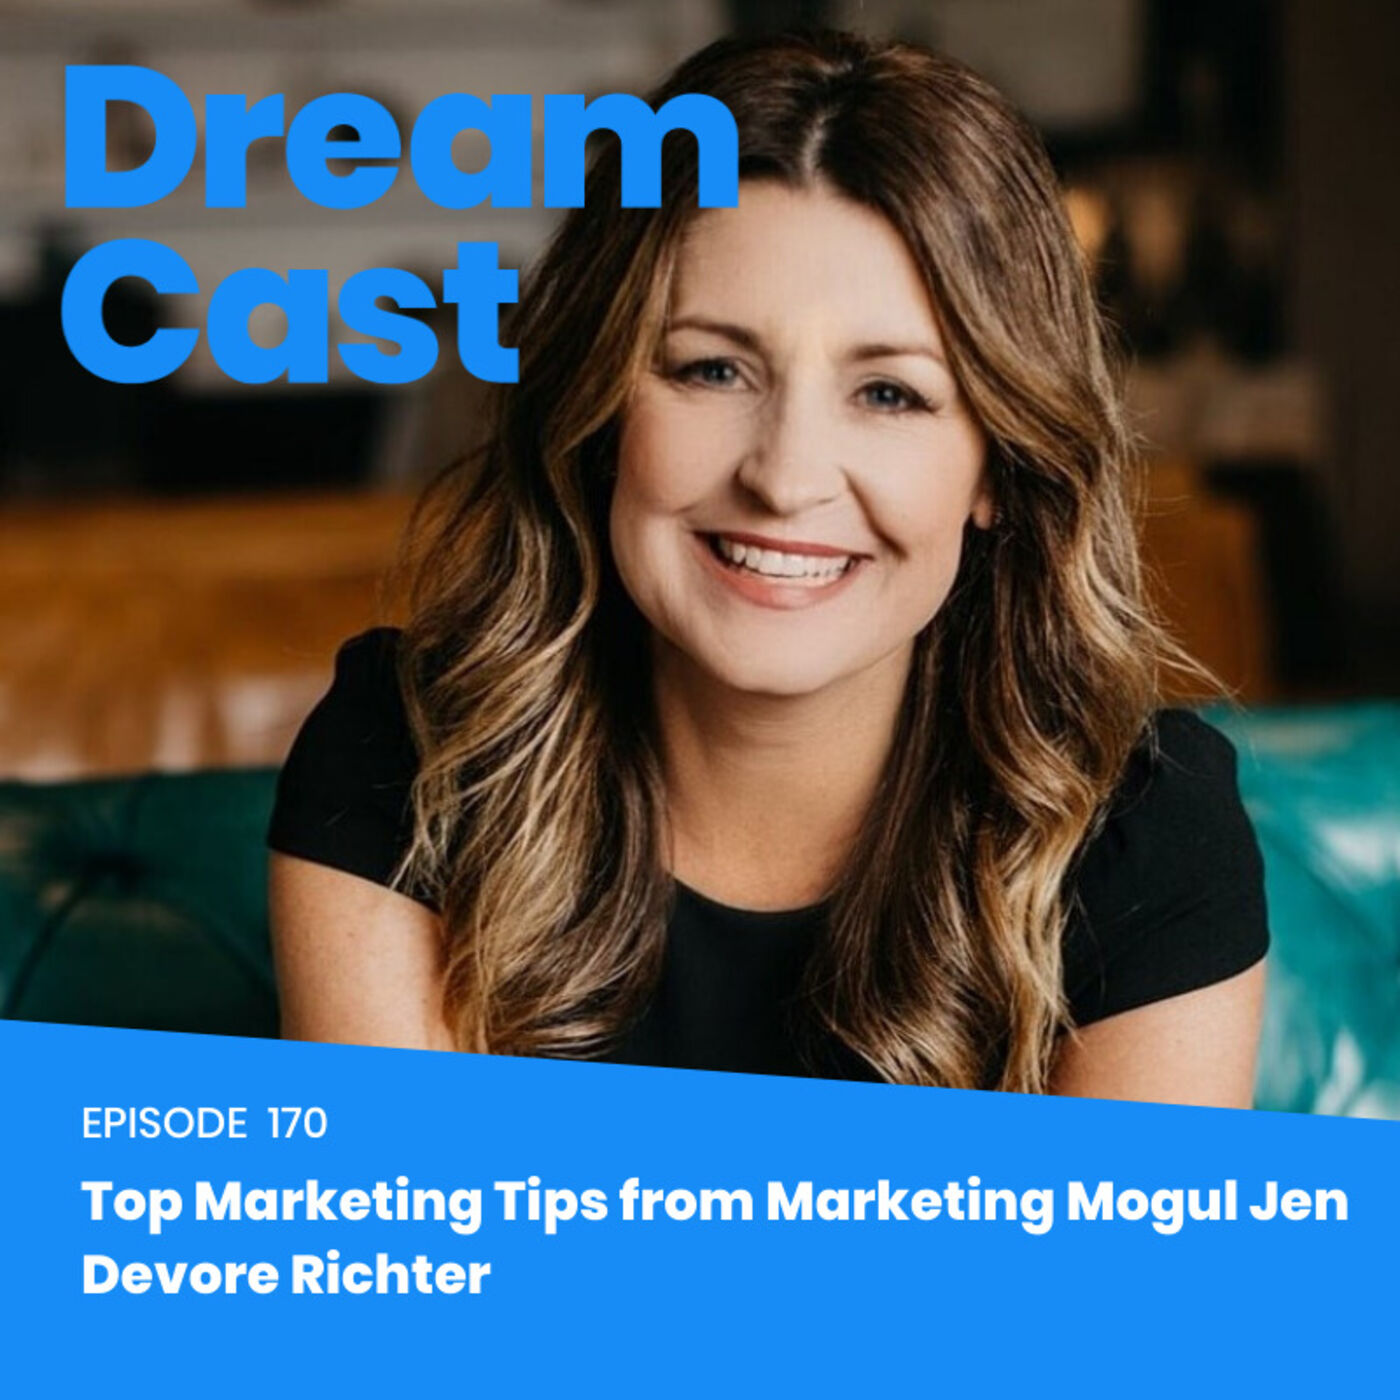 Episode 170 - Top Marketing Tips from Marketing Mogul Jen Devore Richter